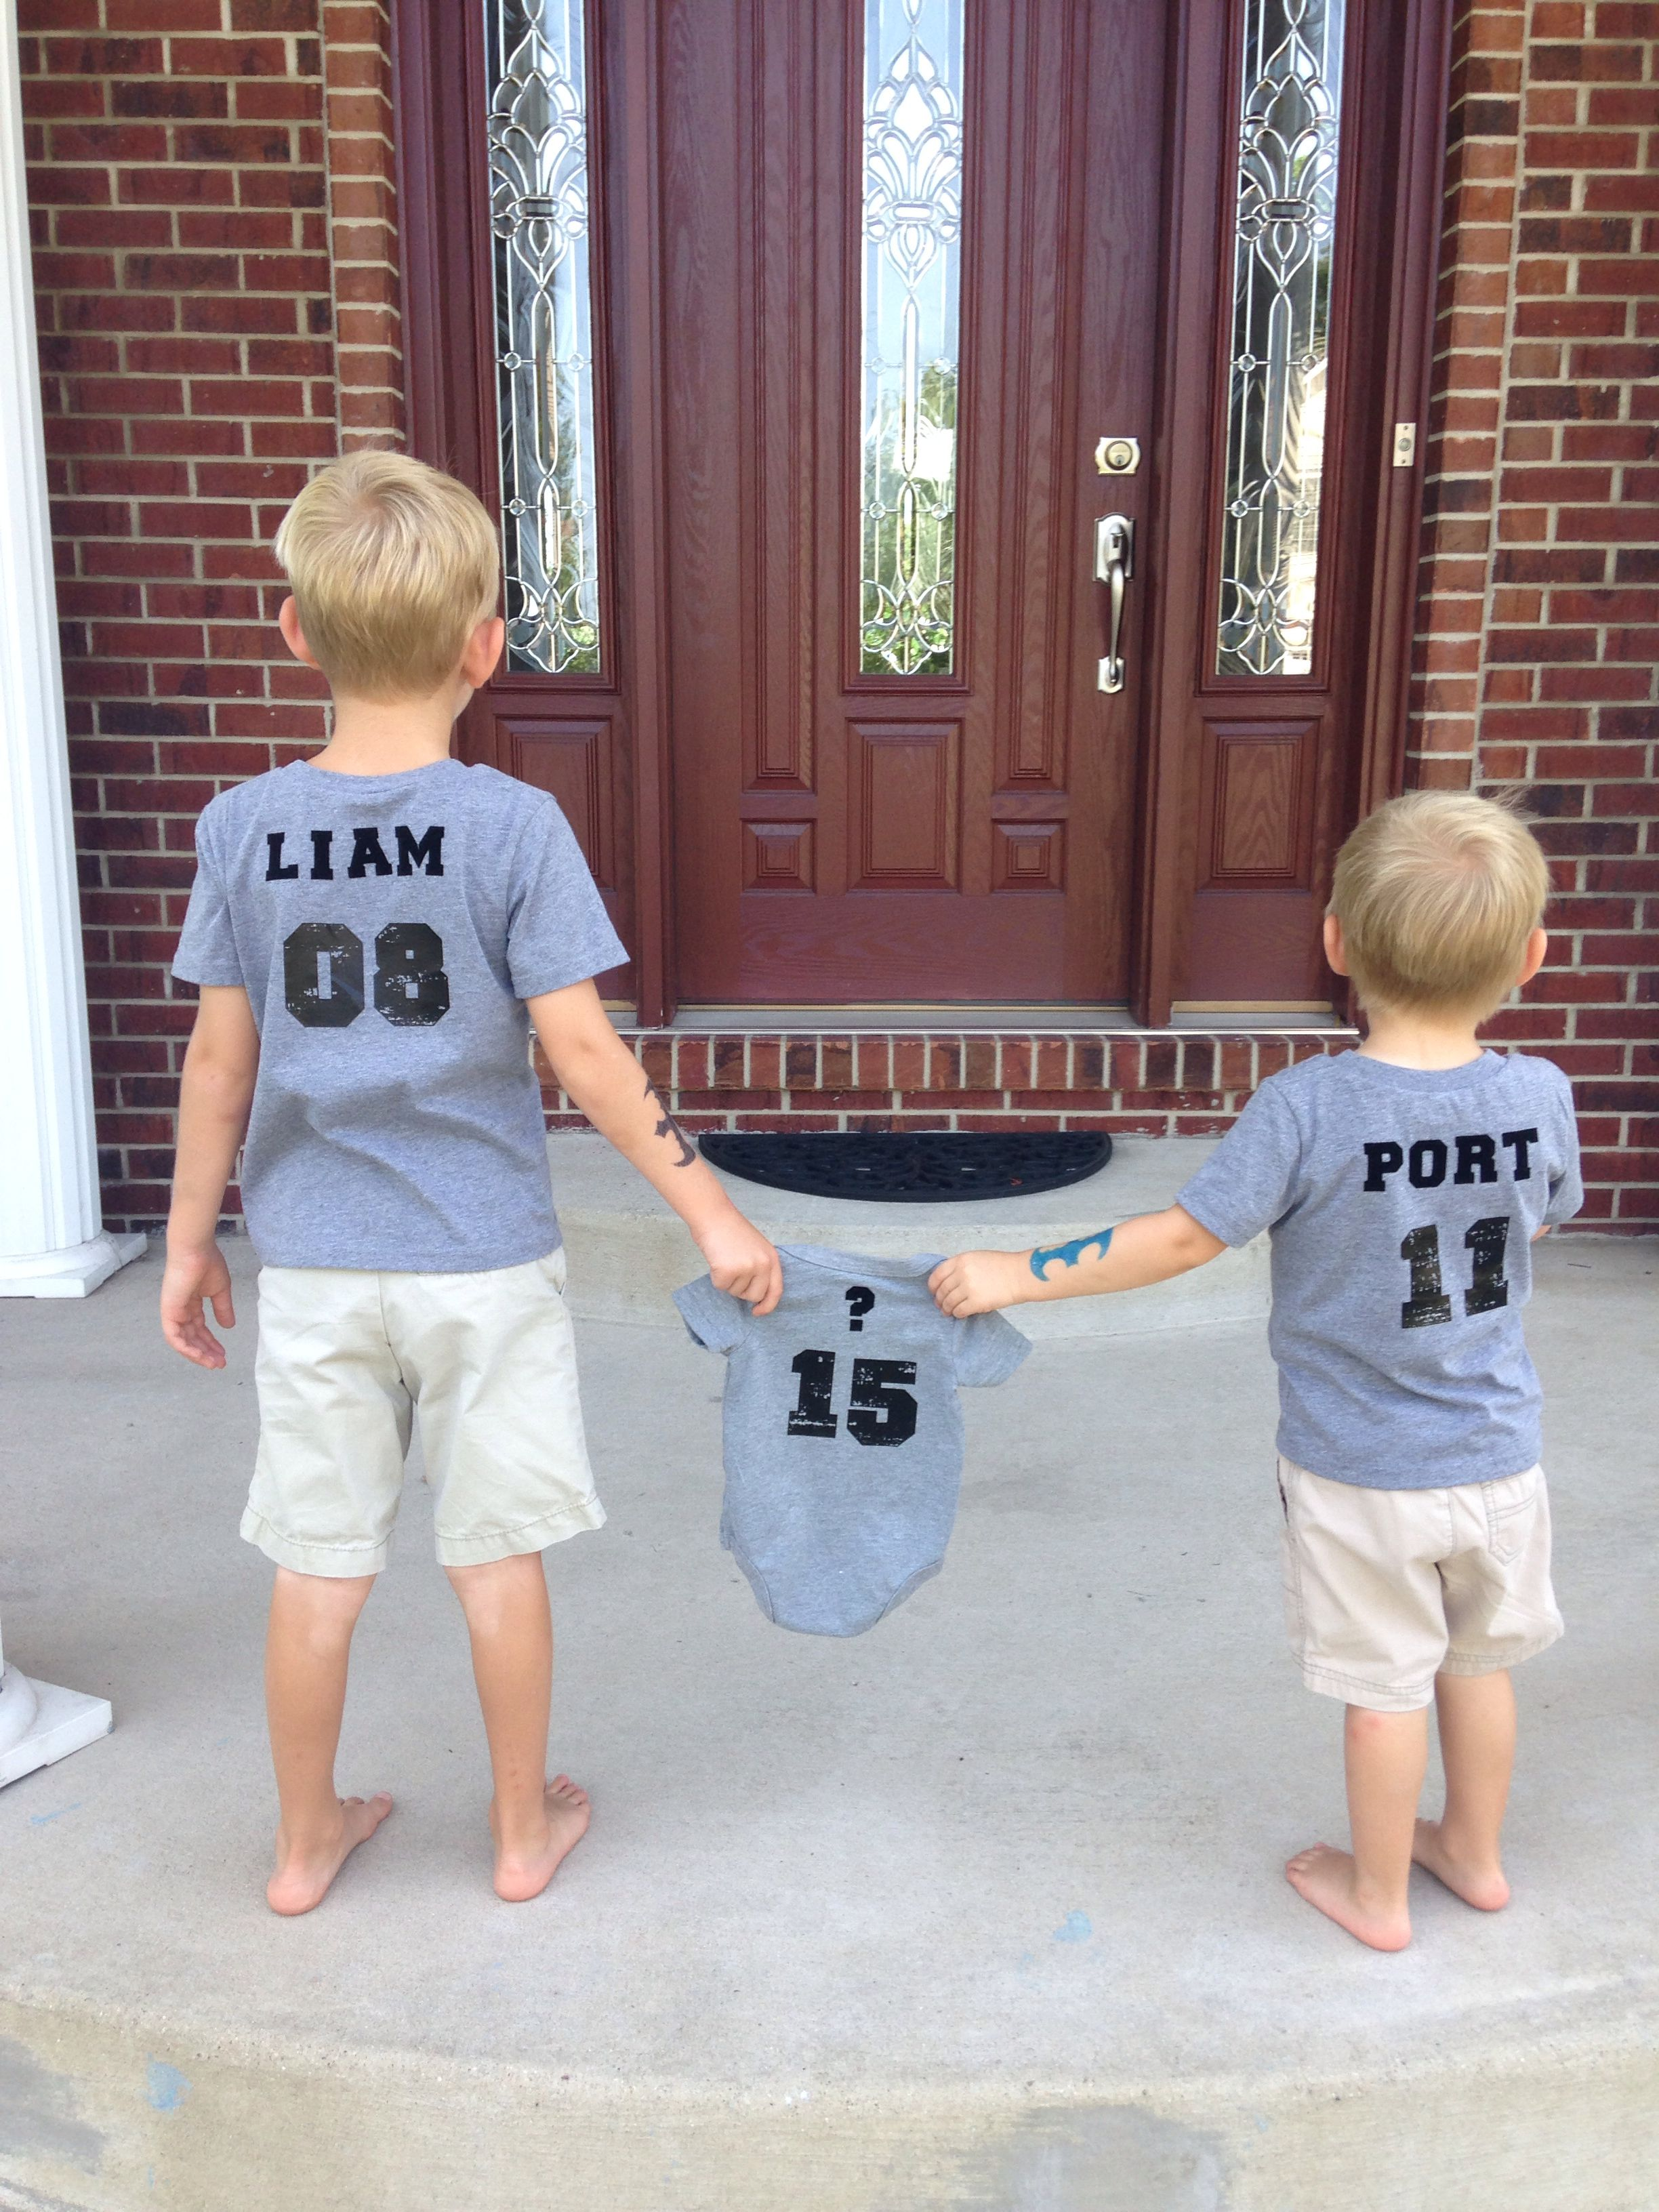 3rd baby announcement #3kids